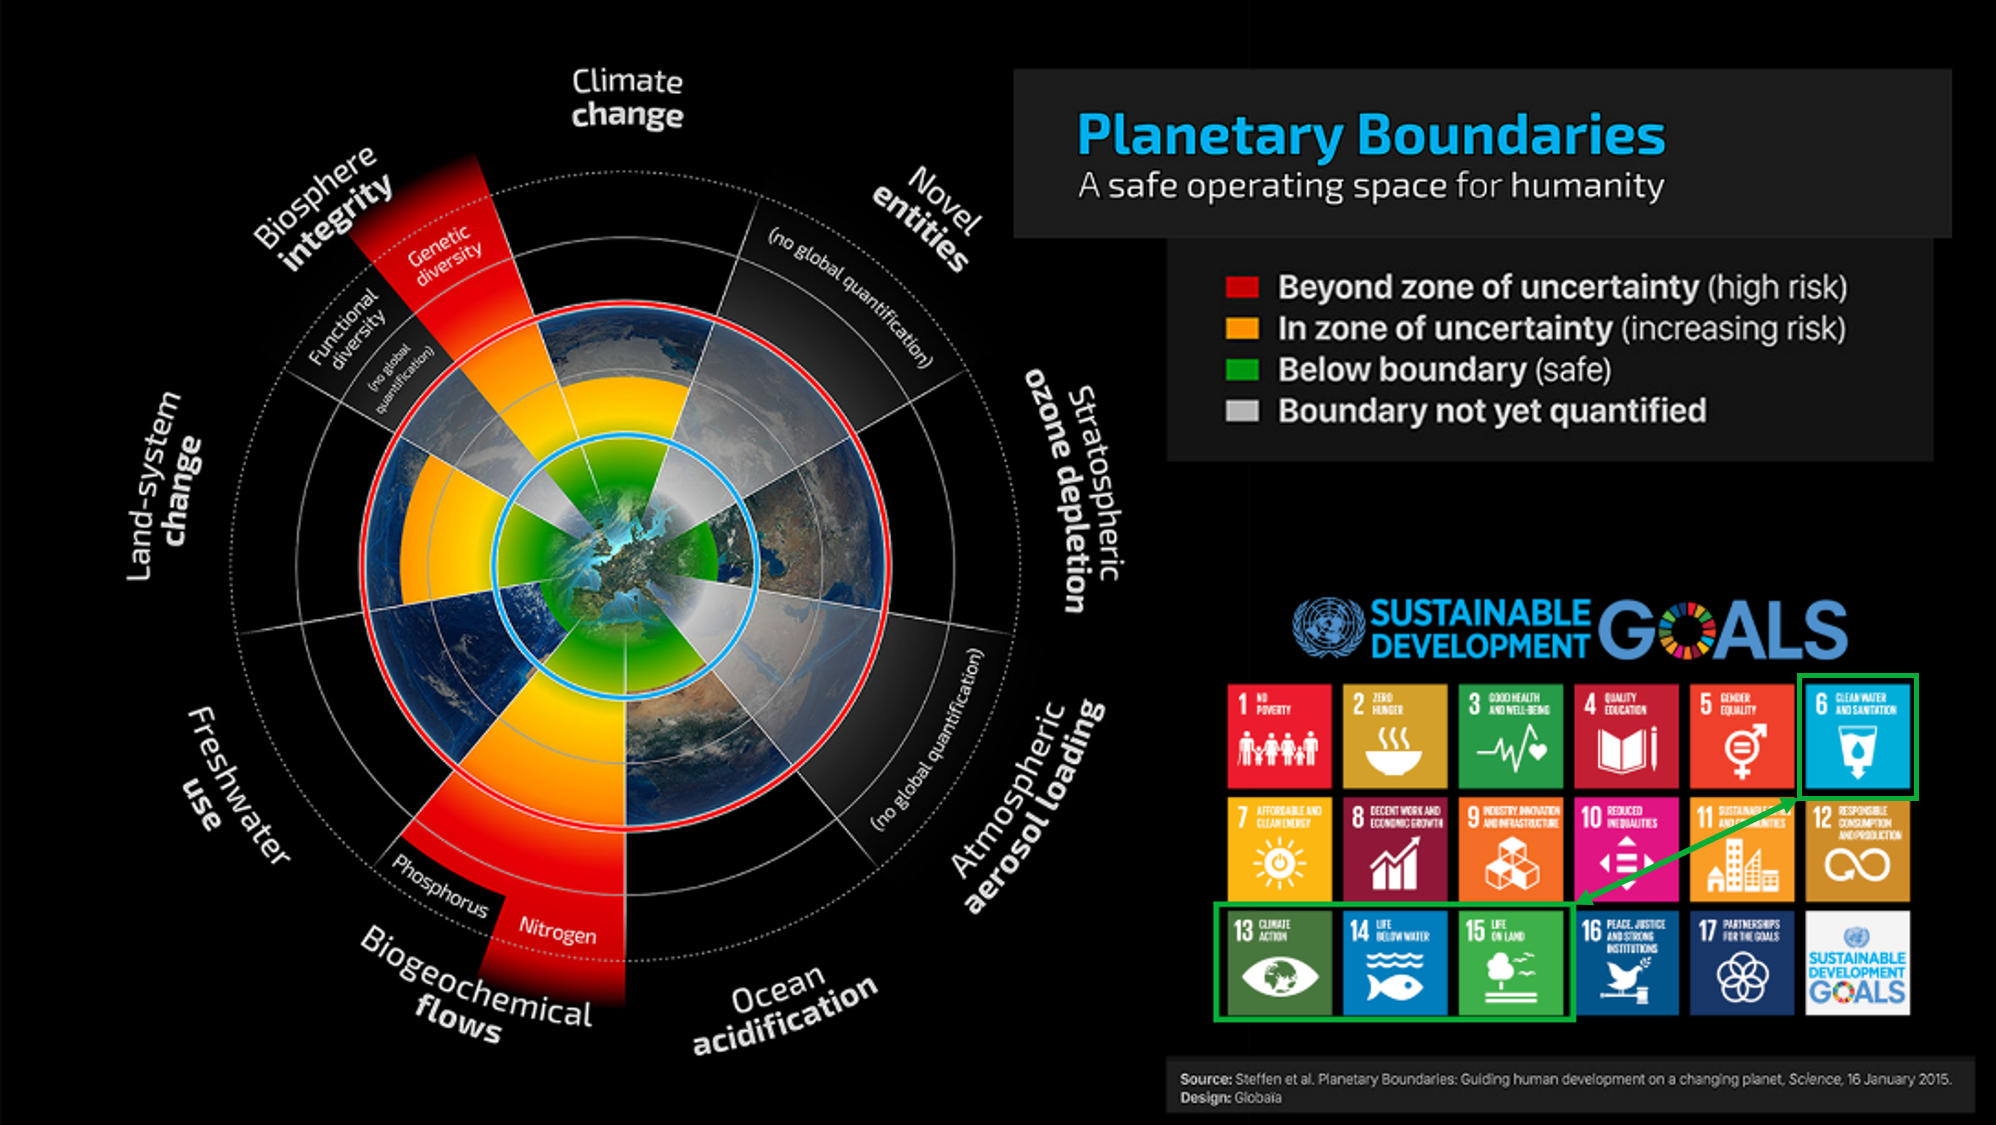 Planetary Boundaries: A safe operating space for humanity